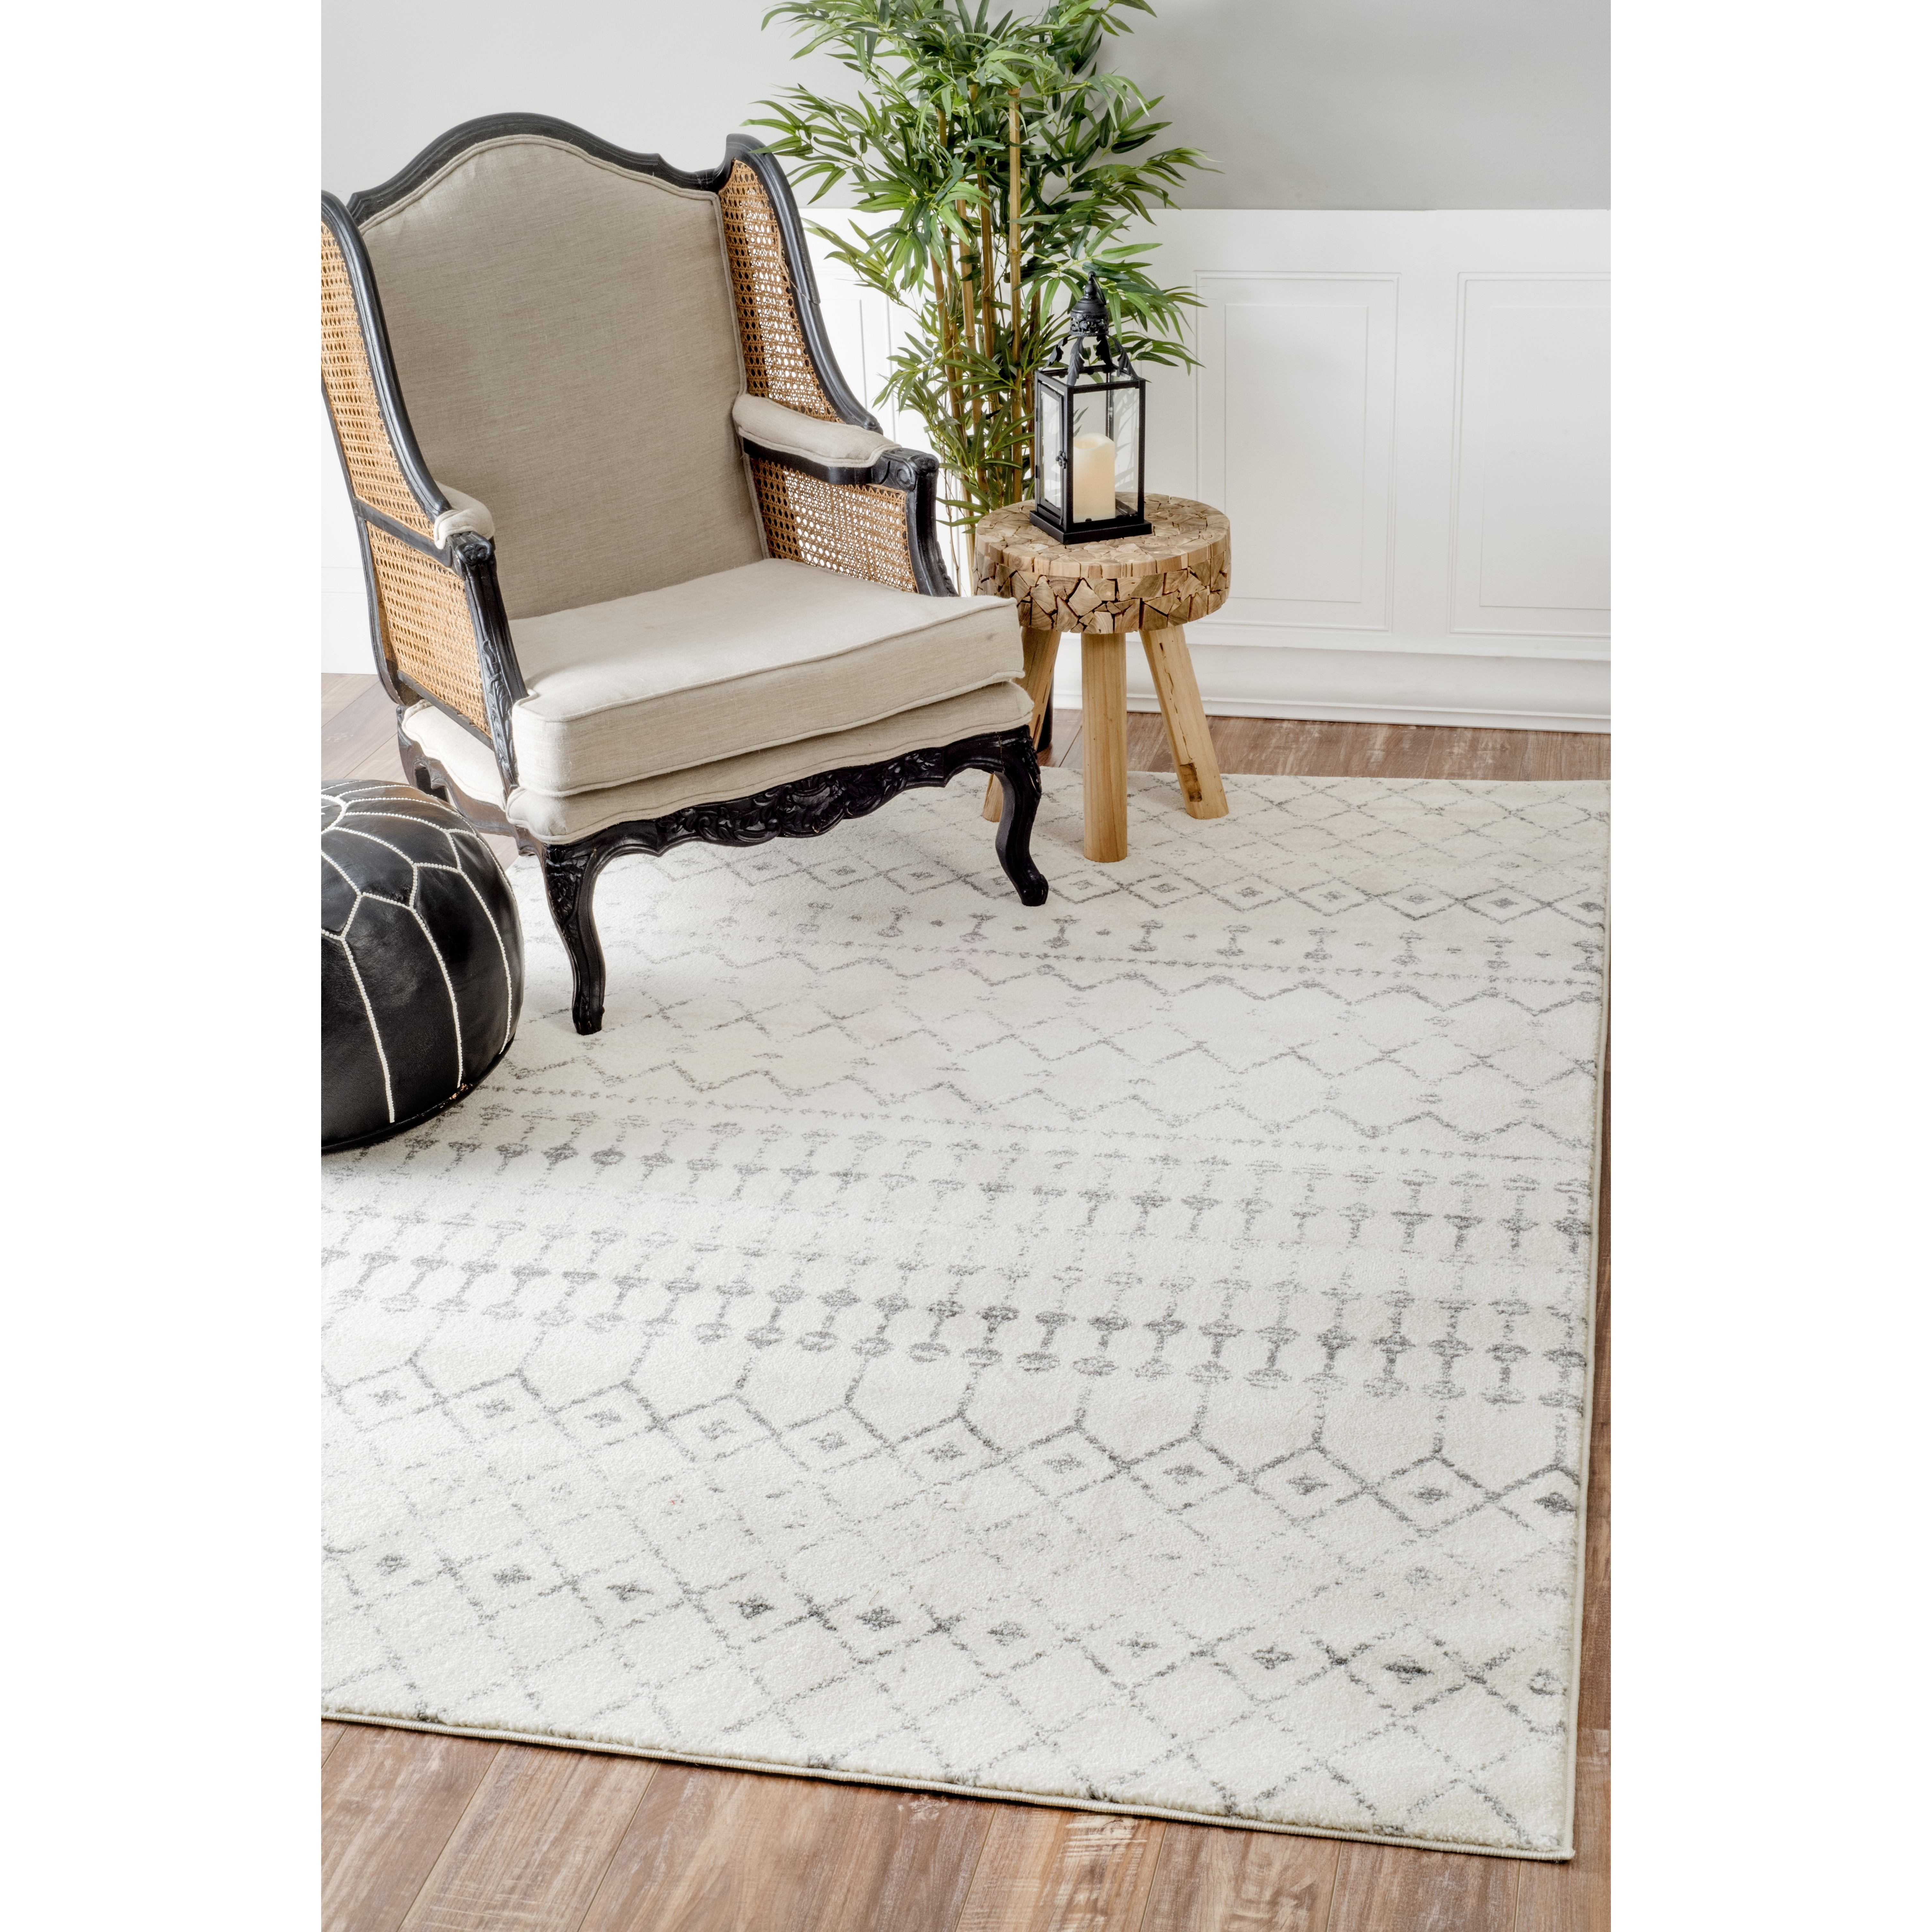 You'll Love The Olga Gray Area Rug At Wayfair – Great Deals On All With Modern Hampton Bay Outdoor Lighting At Wayfair (#15 of 15)